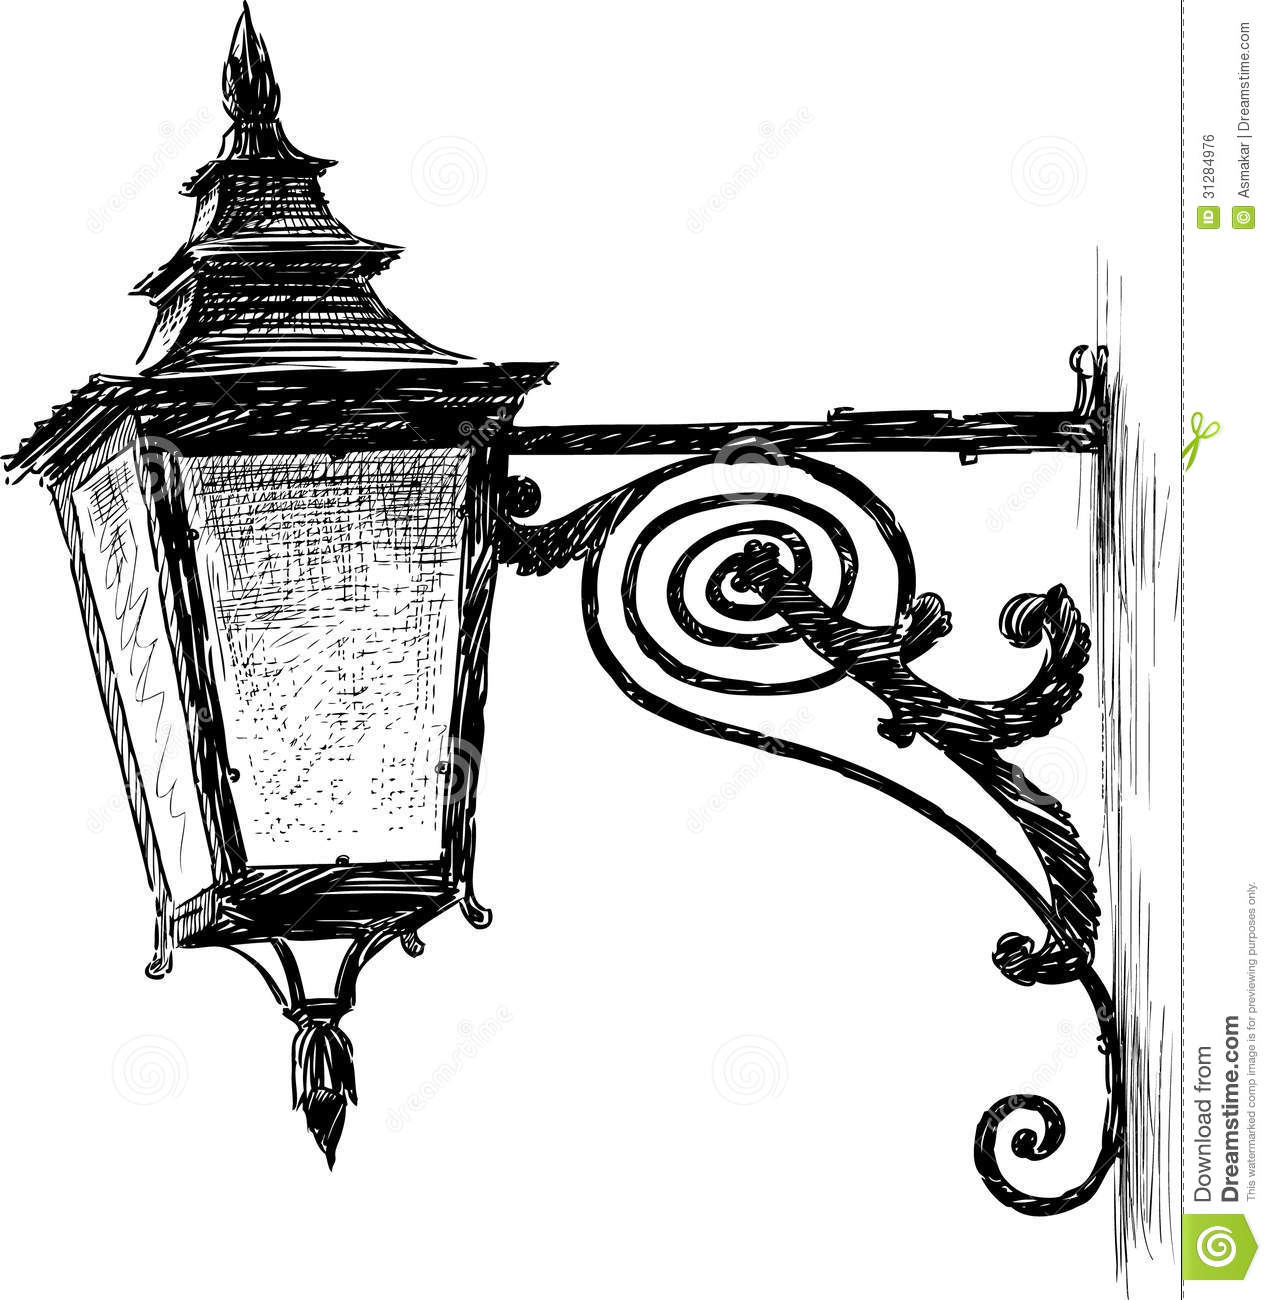 Antique Lantern Stock Vector Illustration Of Drawn Lantern 31284976